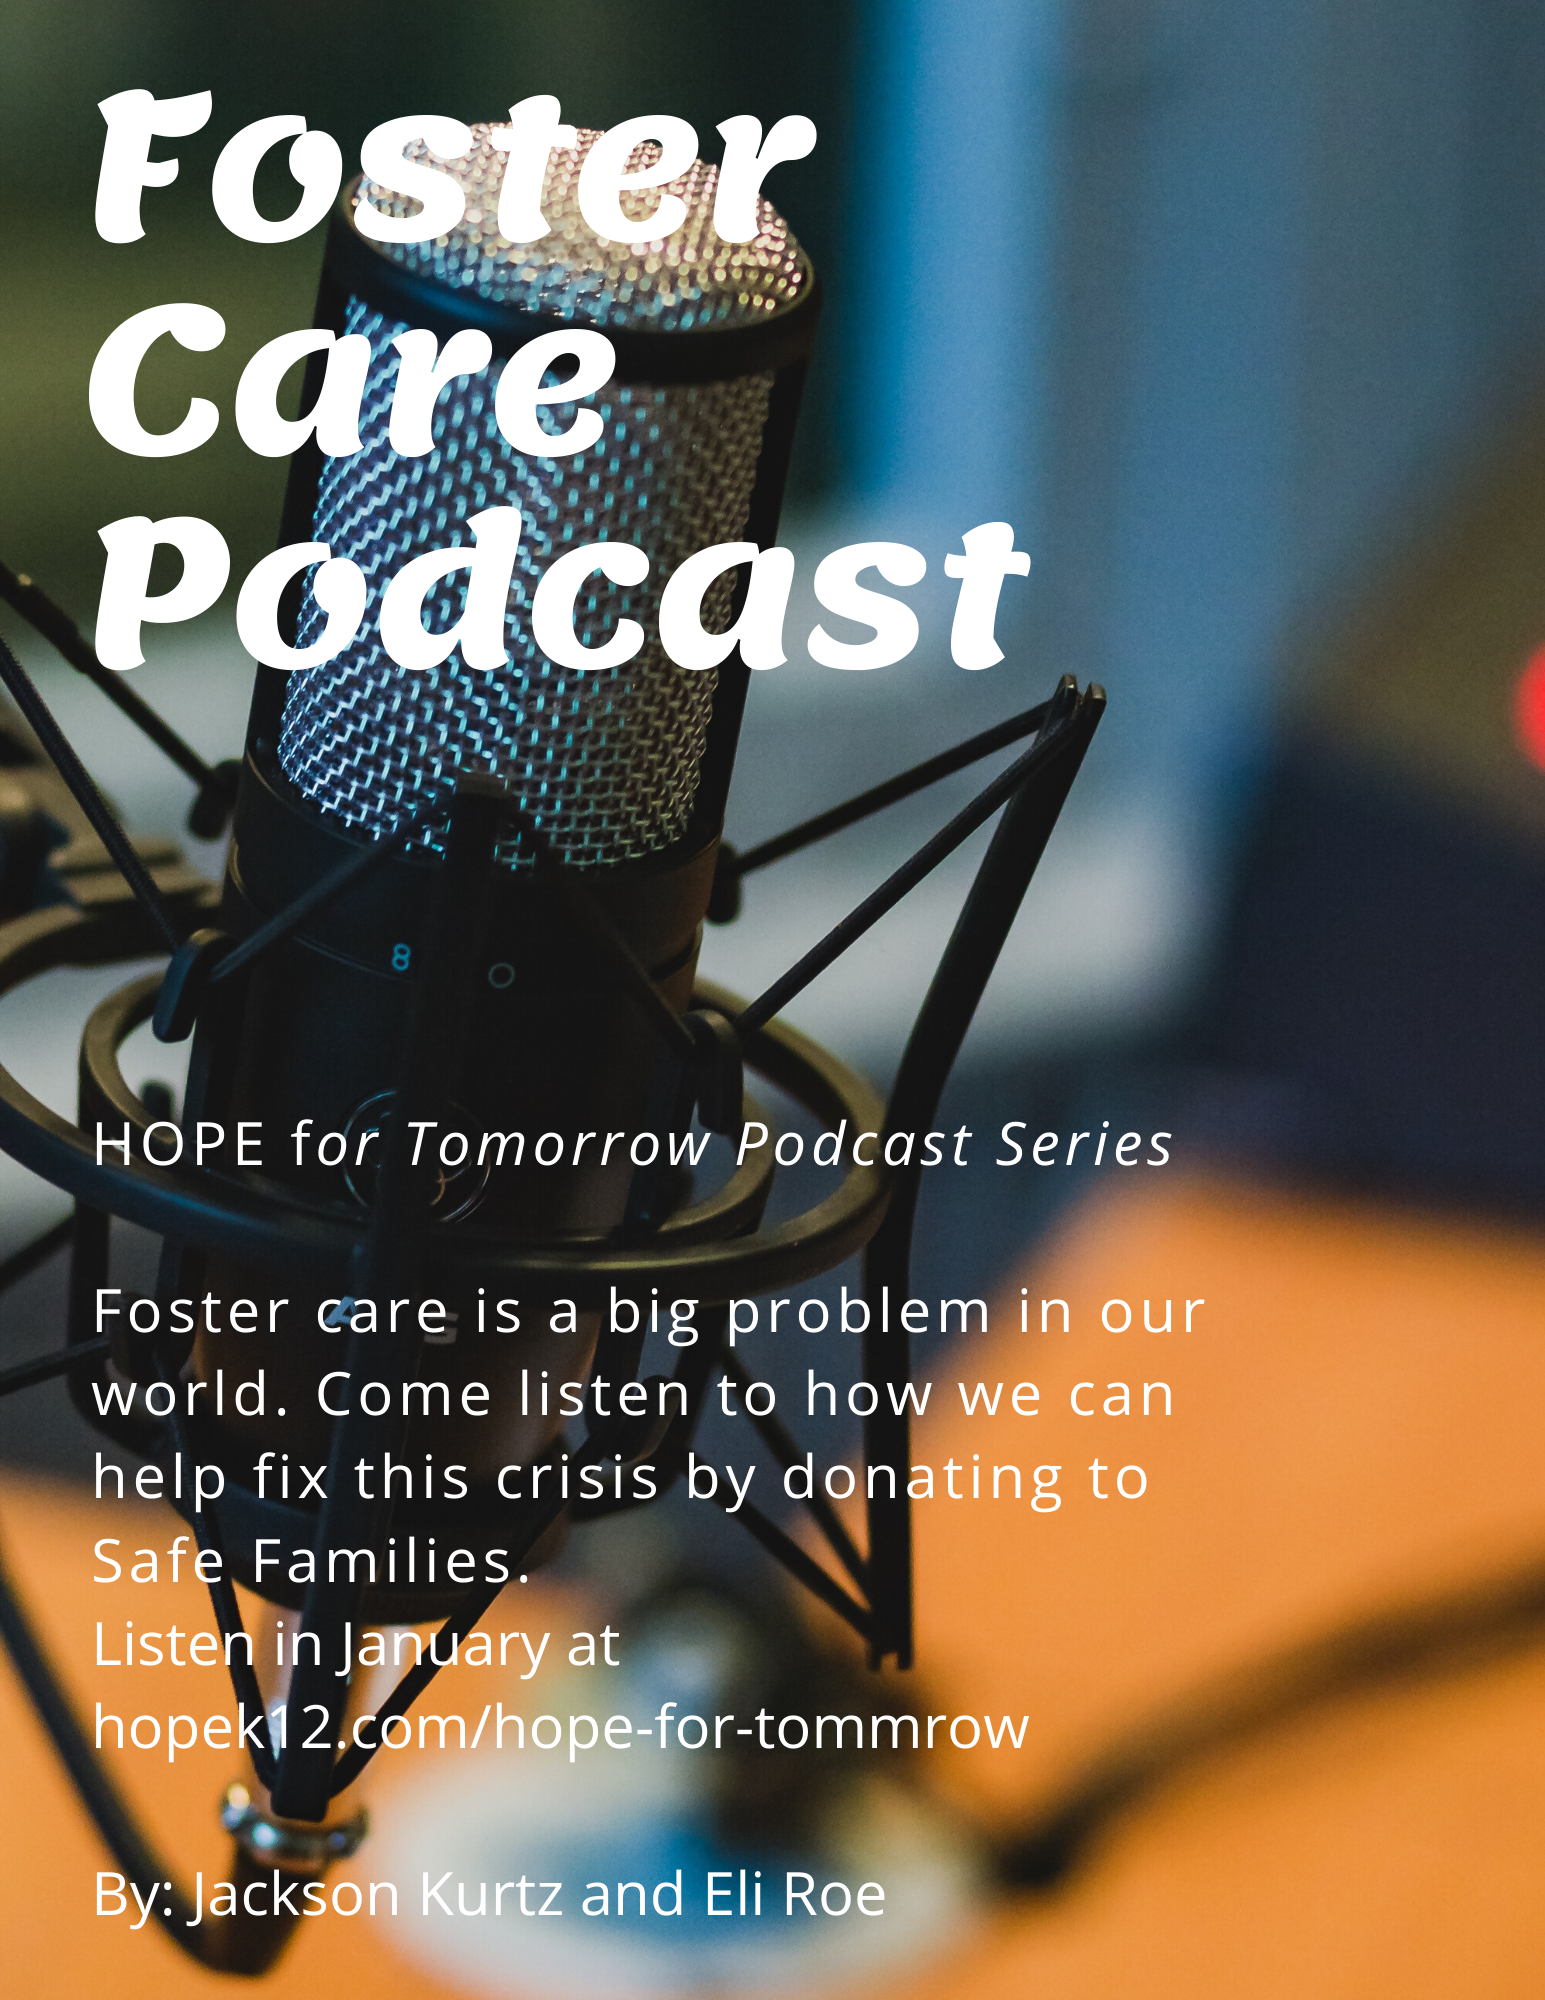 Foster Care - Middle School Students Podcast